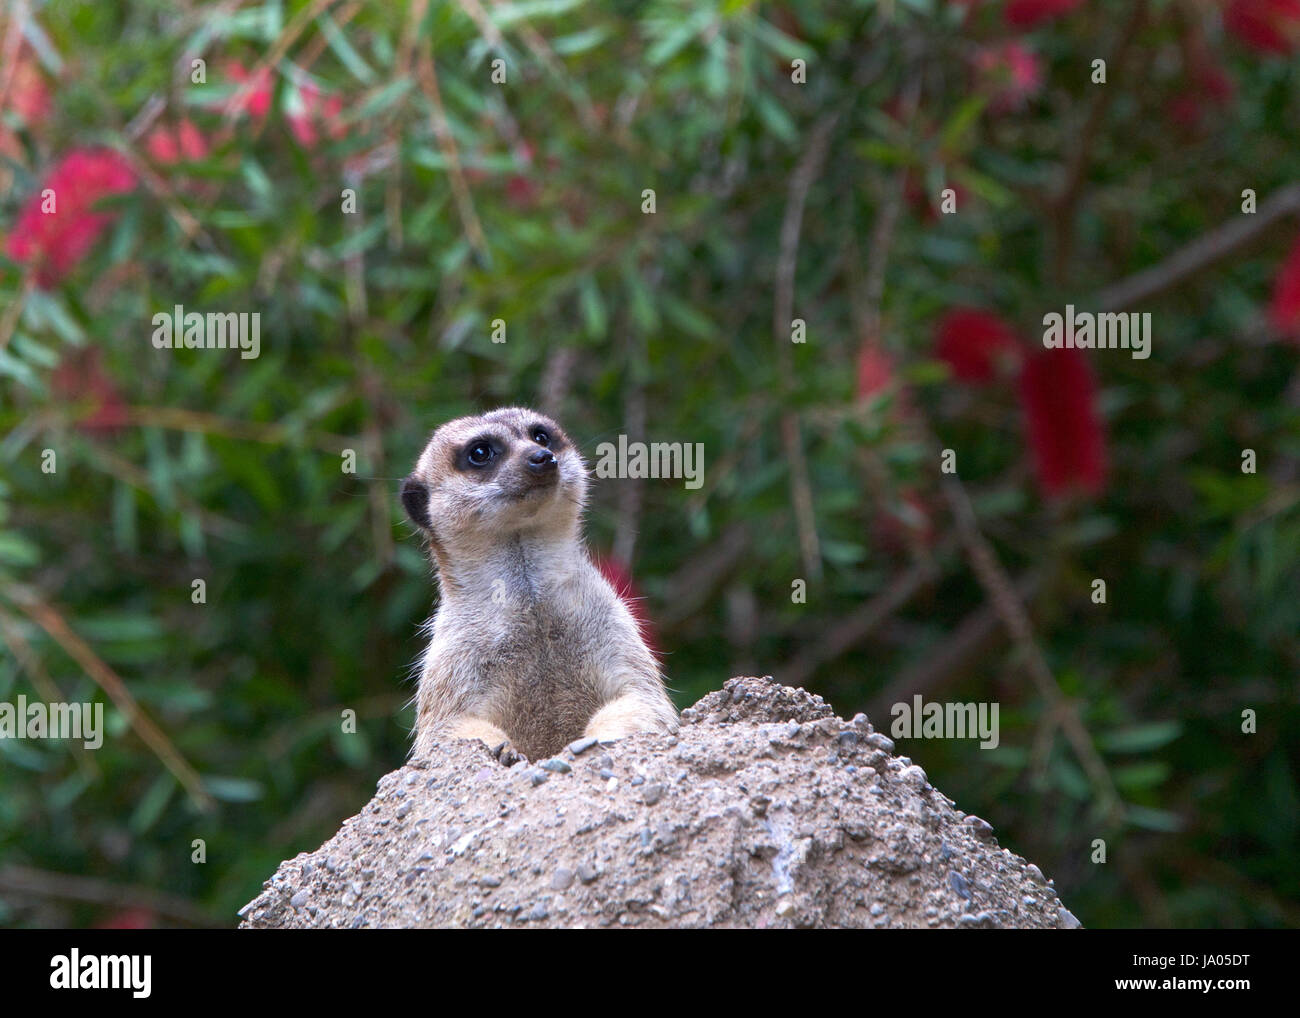 One meerkat peeking out of a hole in a rocky hill looking out for predators. The meerkat or suricate (Suricata suricatta) - Stock Image